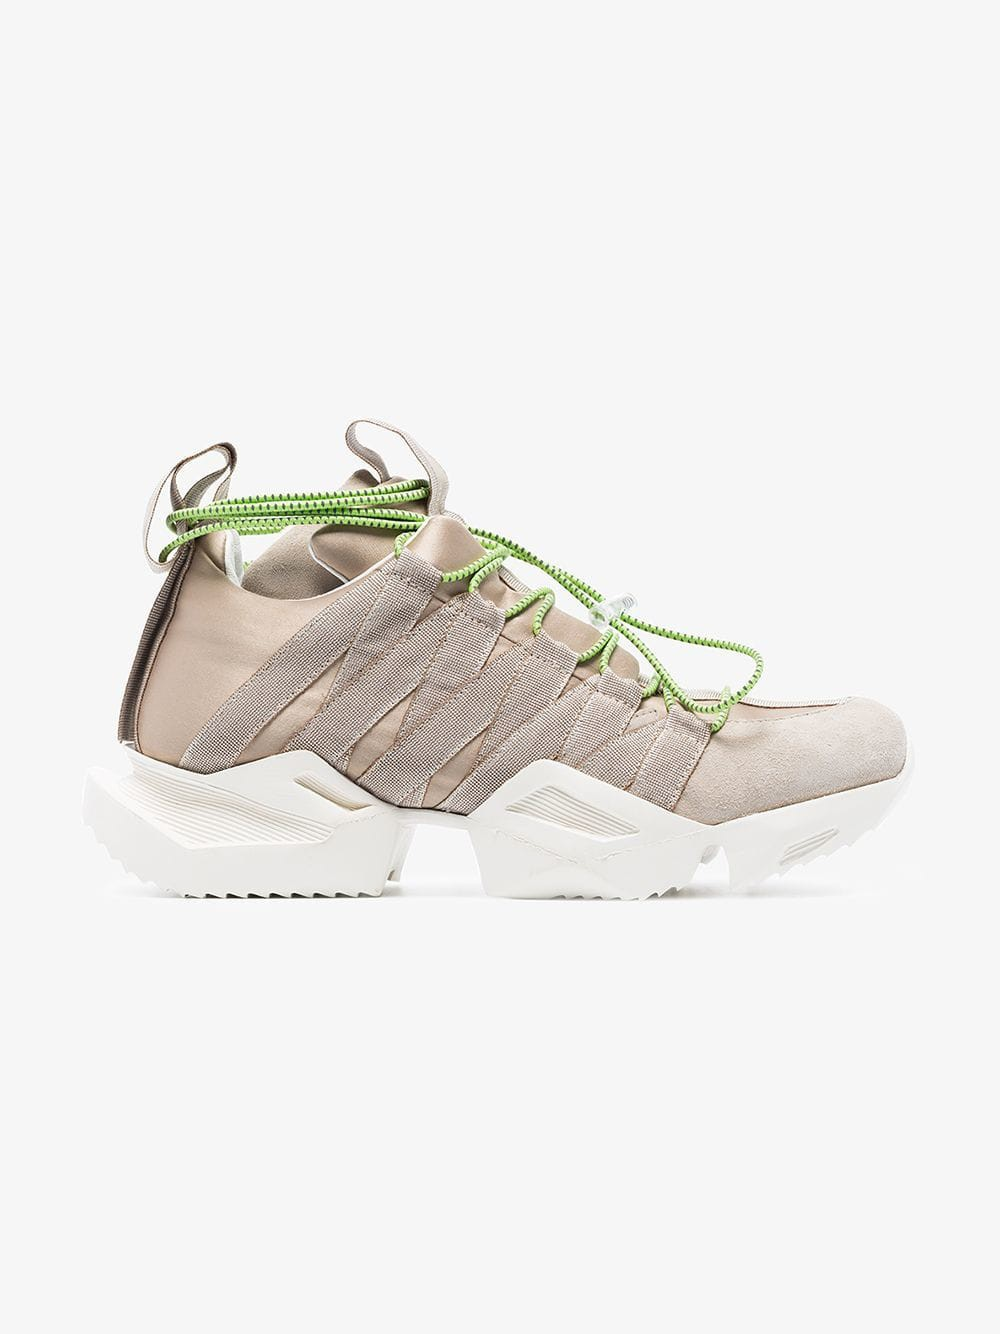 Unravel Project Nude silk and suede chunky sneakers in neutrals